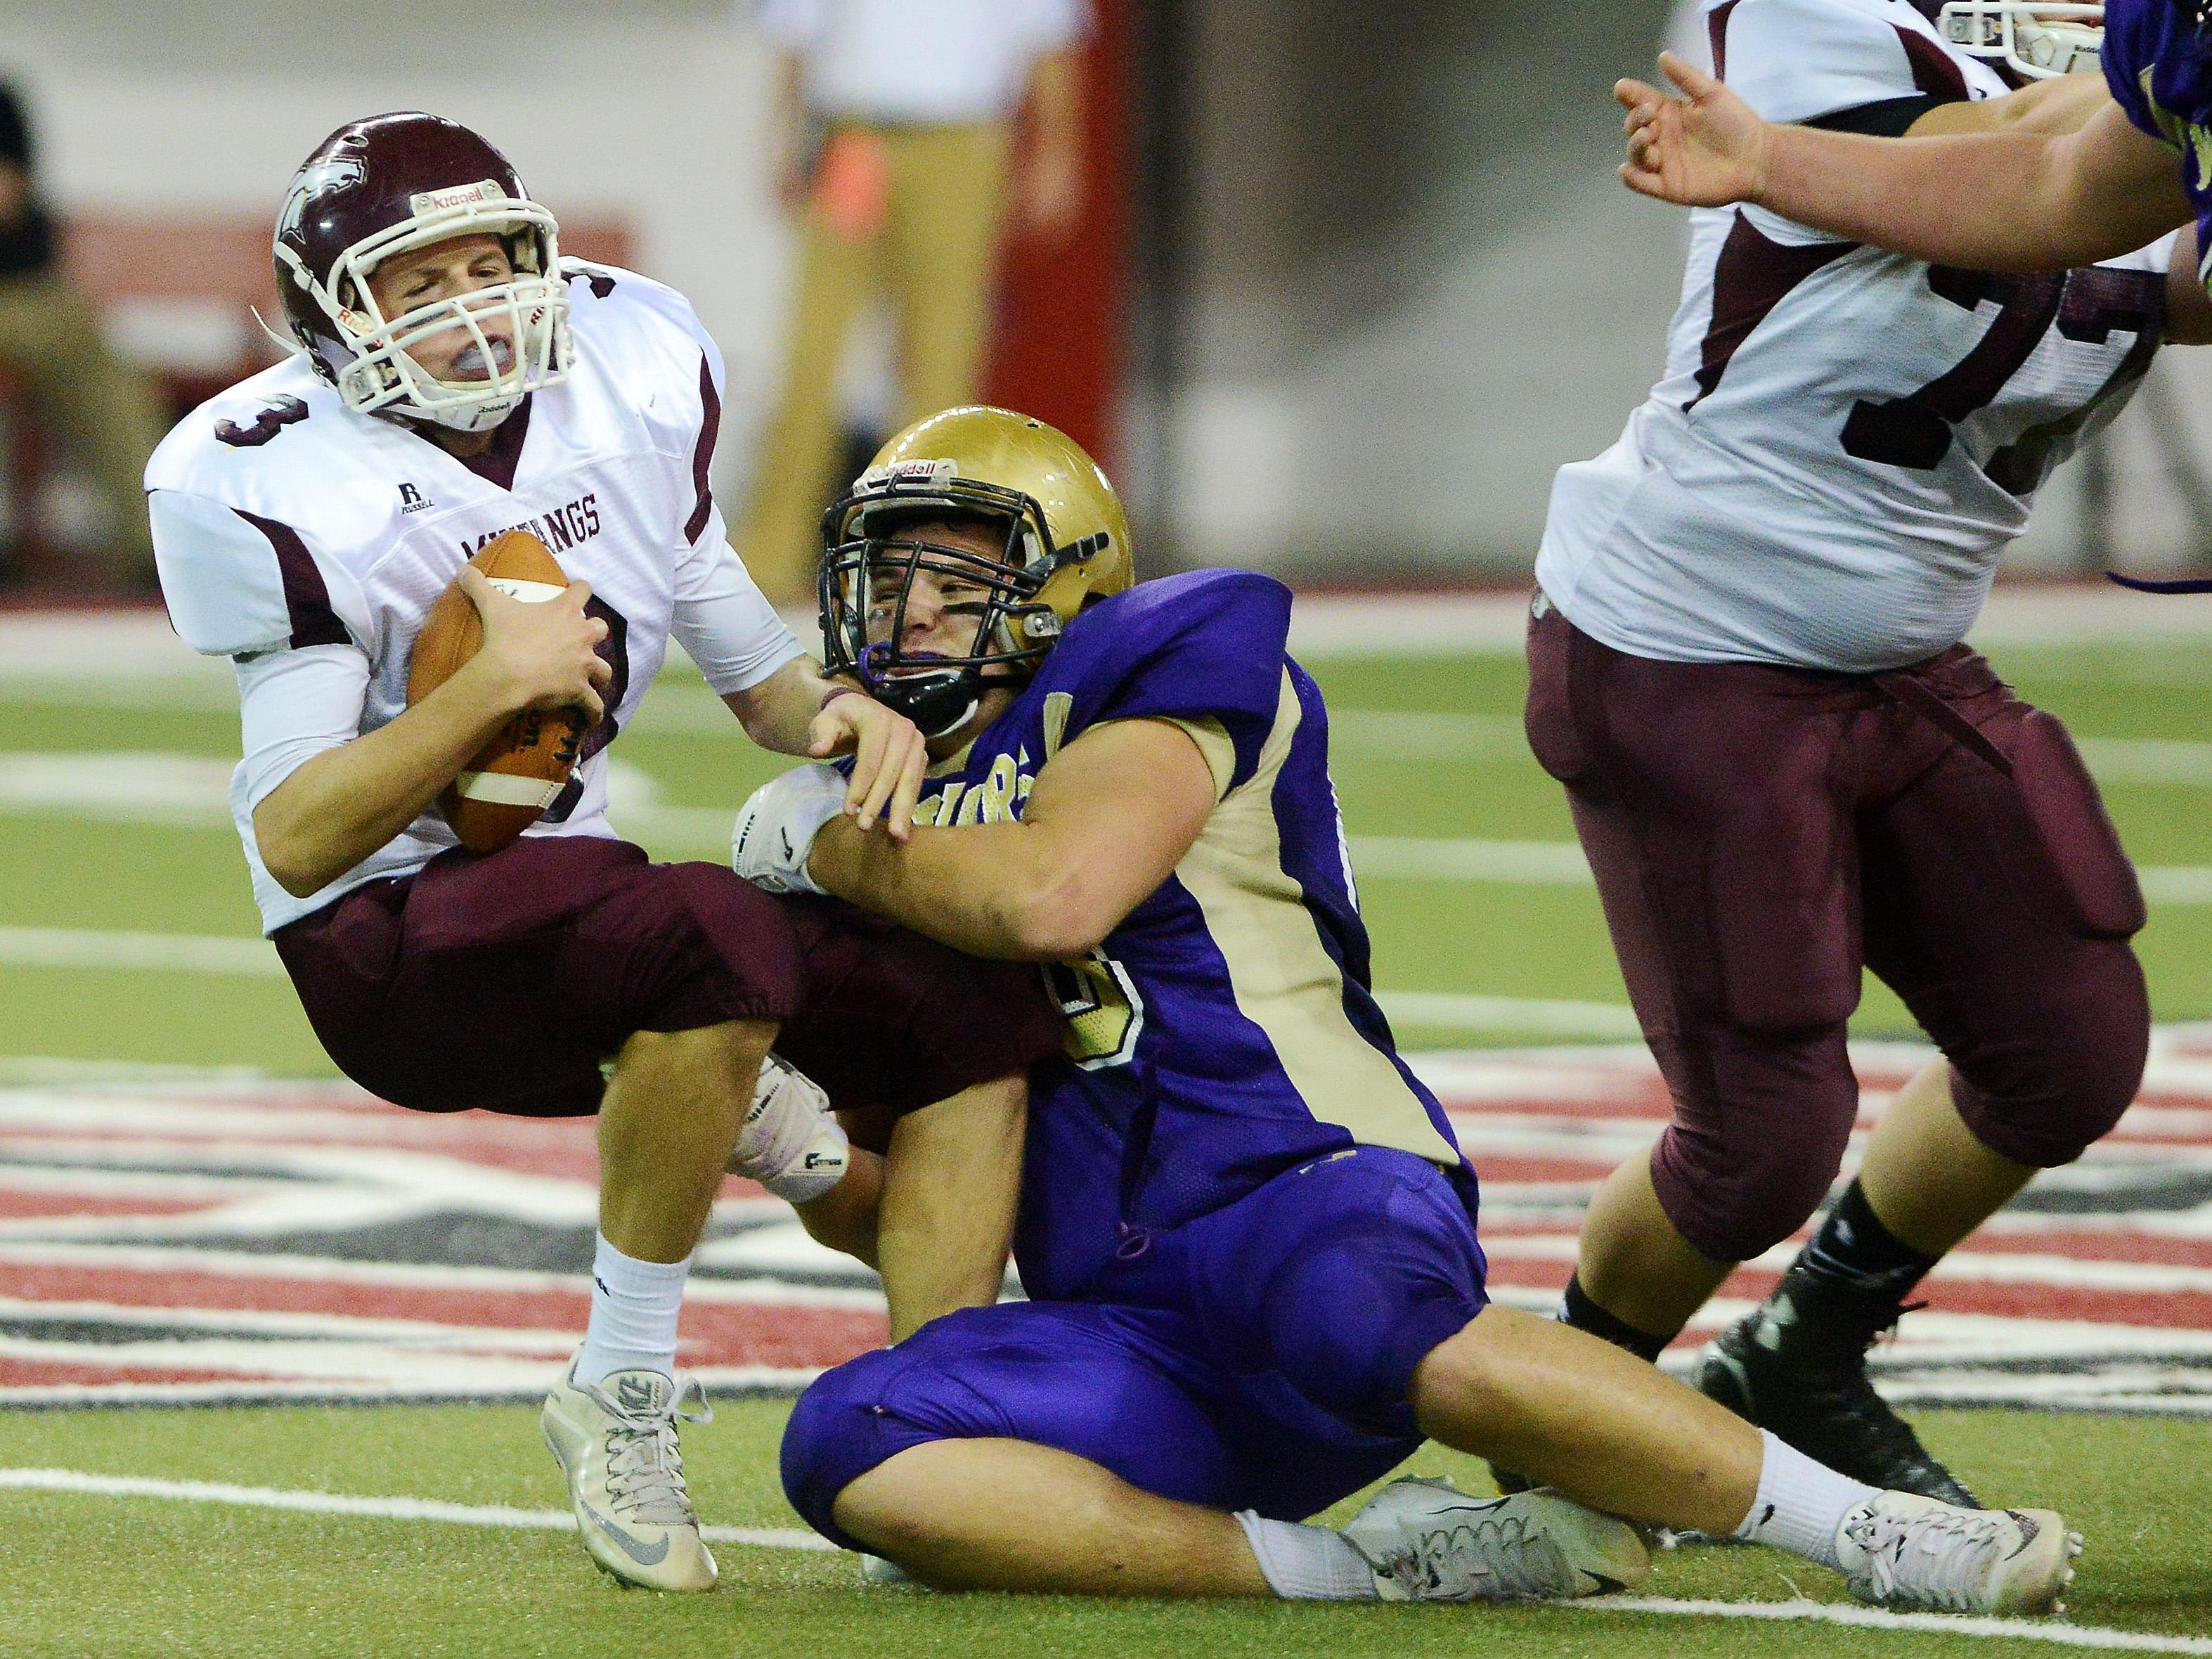 Tri-Valley's Noah Jewett is taken down by Winner's Wyatt Ewing in the Class 11B championship game. Jewett and the Mustangs lost that game 45-6, finishing the year at 7-5. Tri-Valley played five of its eight regular season games in 2015 against Class 11A schools and has done the same in 2016.